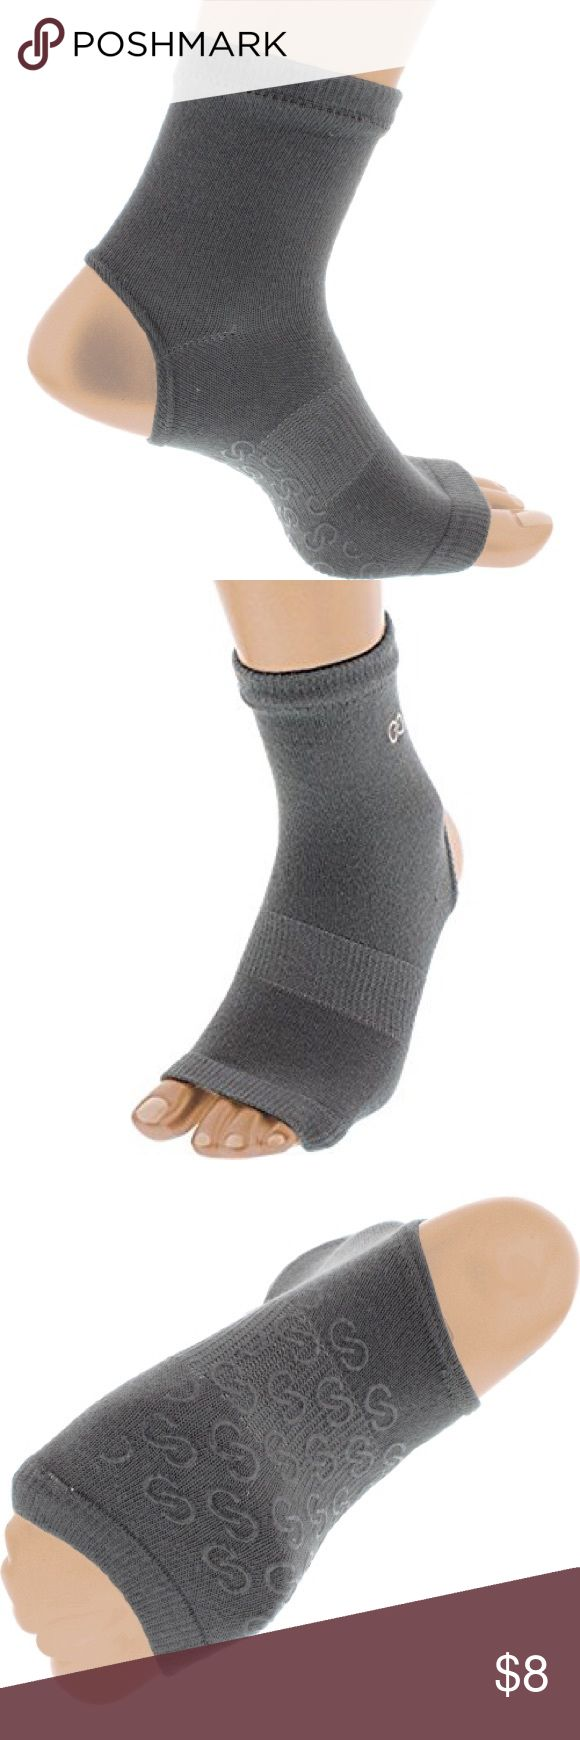 2 PAIRS - Calia by Carrie Underwood Grip Socks Like new, never worn. 2 pairs grey stirrup grip socks for barre, Pilates or yoga. Retail for $20 and super hard to find! CALIA by Carrie Underwood Other